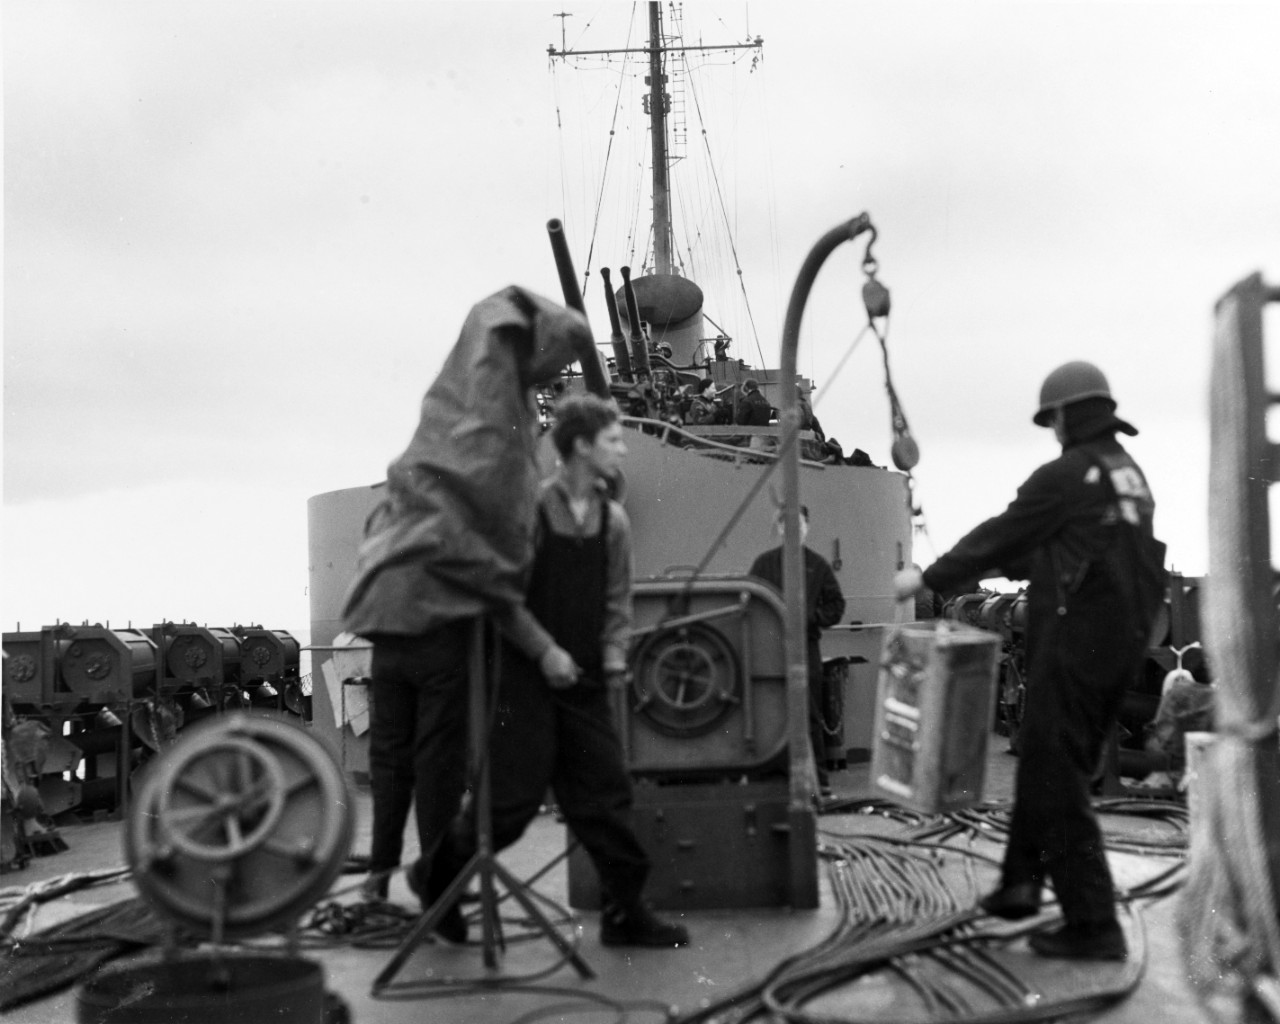 Crewmembers of Frederick C. Davis at work on the ship's fantail, during Operation Shingle. (U.S. Navy Photograph 80-G-223466, National Archives and Records Administration, Still Pictures Division, College Park, Md.)